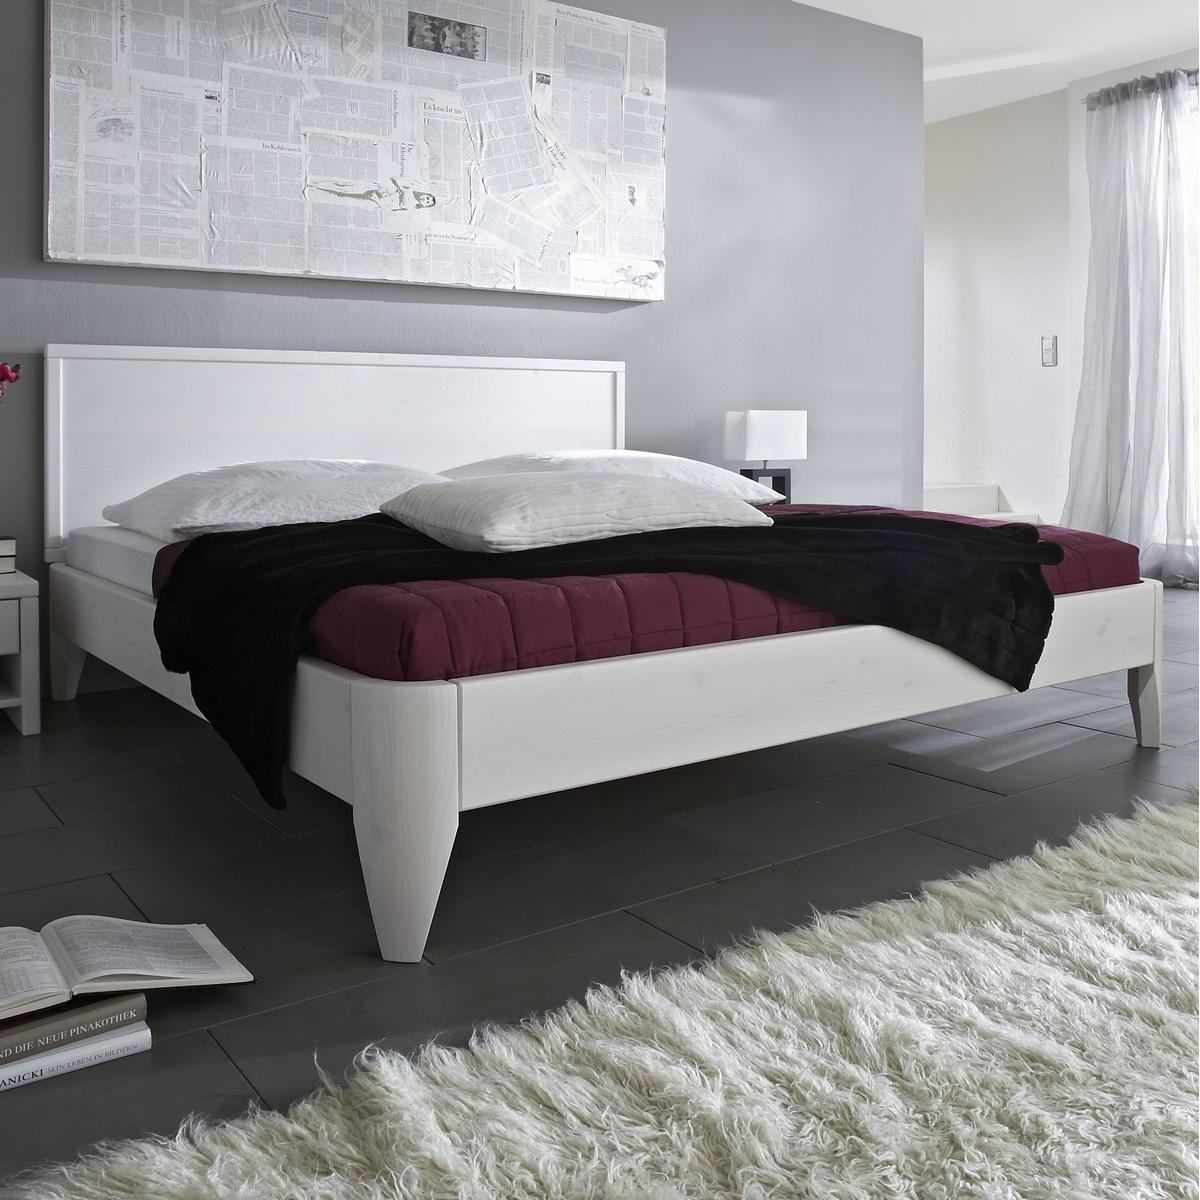 massivholz bett 180x200 easy sleep kiefer massiv wei. Black Bedroom Furniture Sets. Home Design Ideas